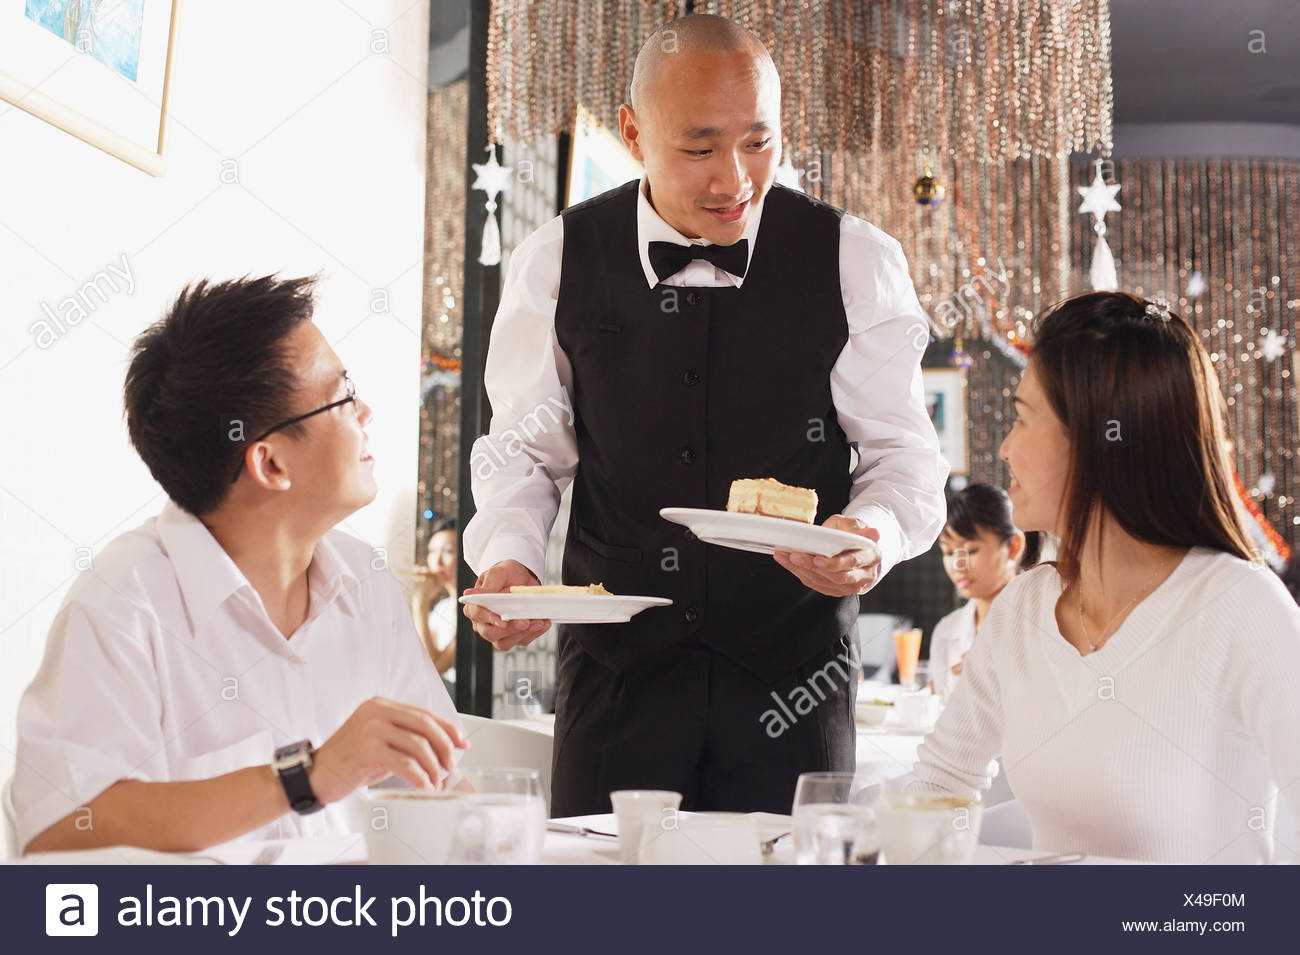 couple in restaurant waiter standing holding plates of dessert